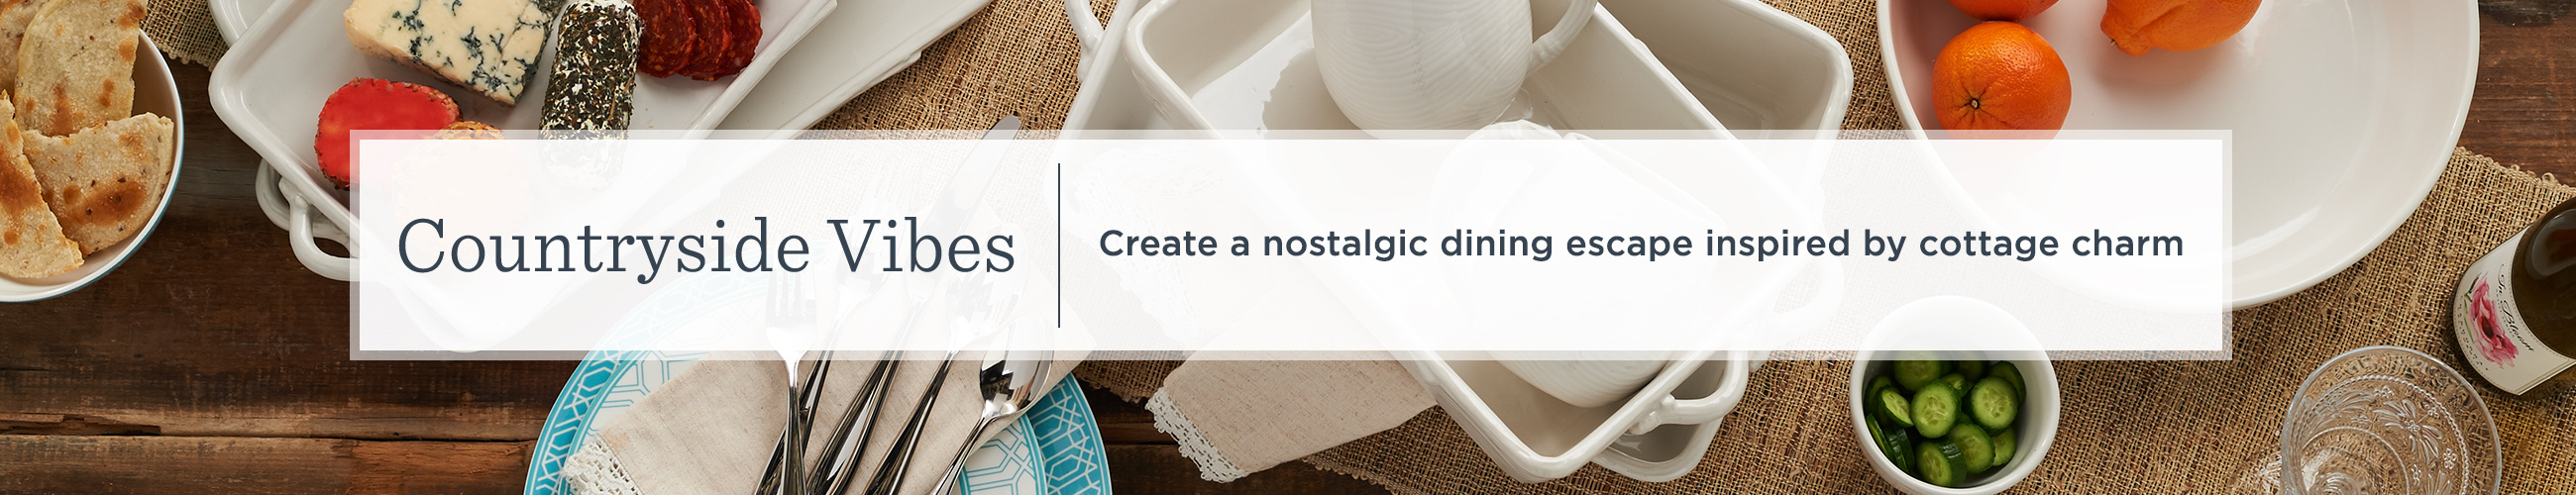 Countryside Vibes. Create a nostalgic dining escape inspired by cottage charm